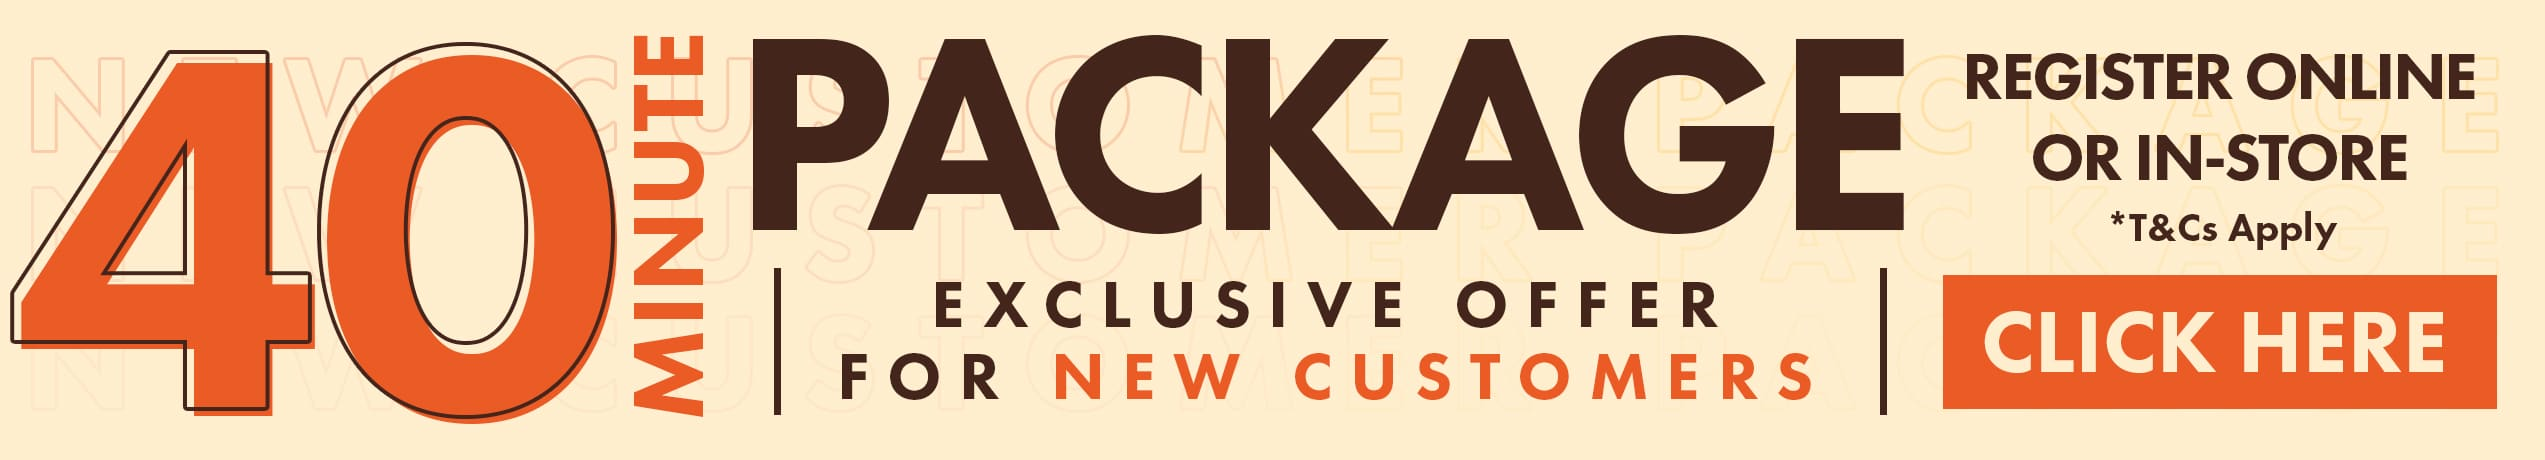 40 Minutes Package exclusive to new customers, register online or in-store